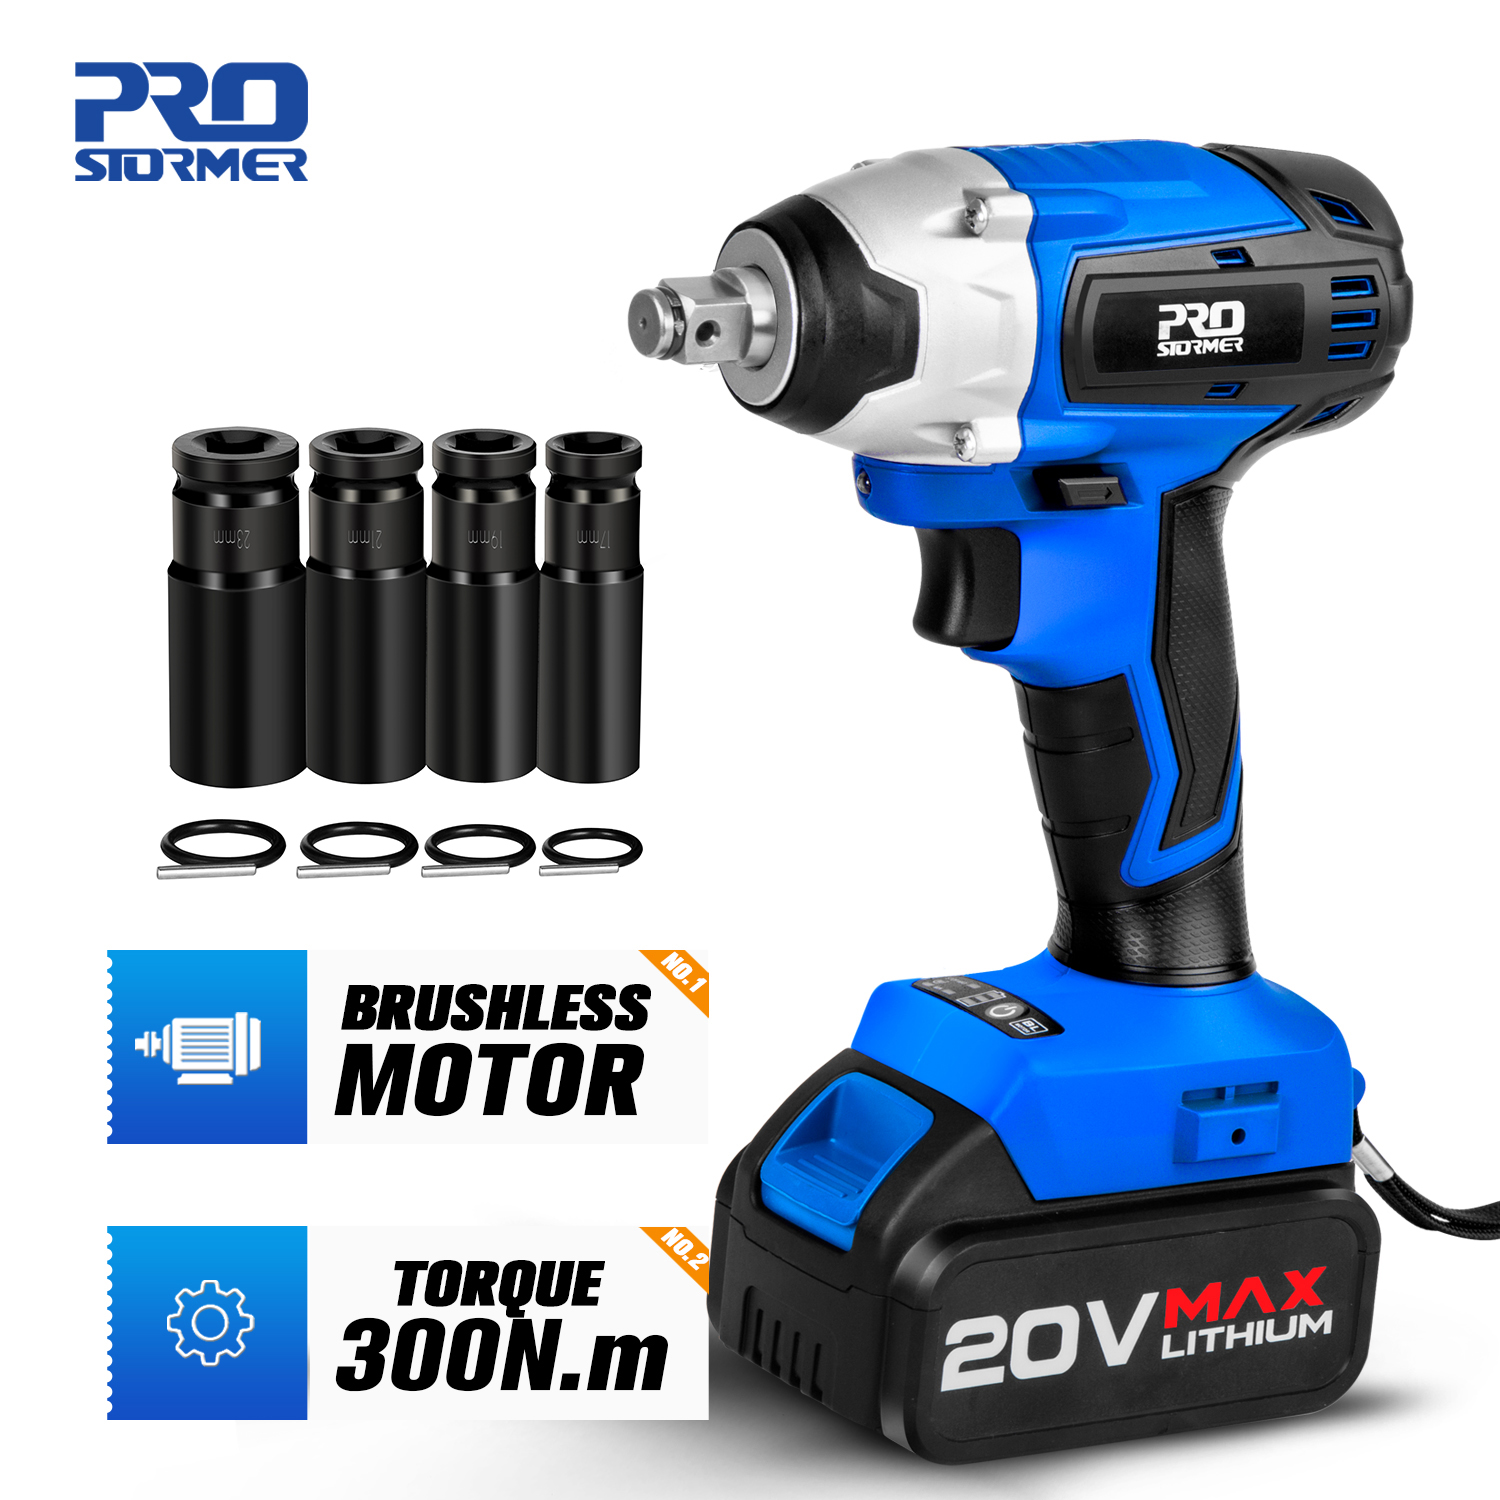 300NM Burshless Cordless Impact Wrench 20V Torque Socket Wrench  4000mAh Lithium-Ion Battery Power Tool By PROSTORMER